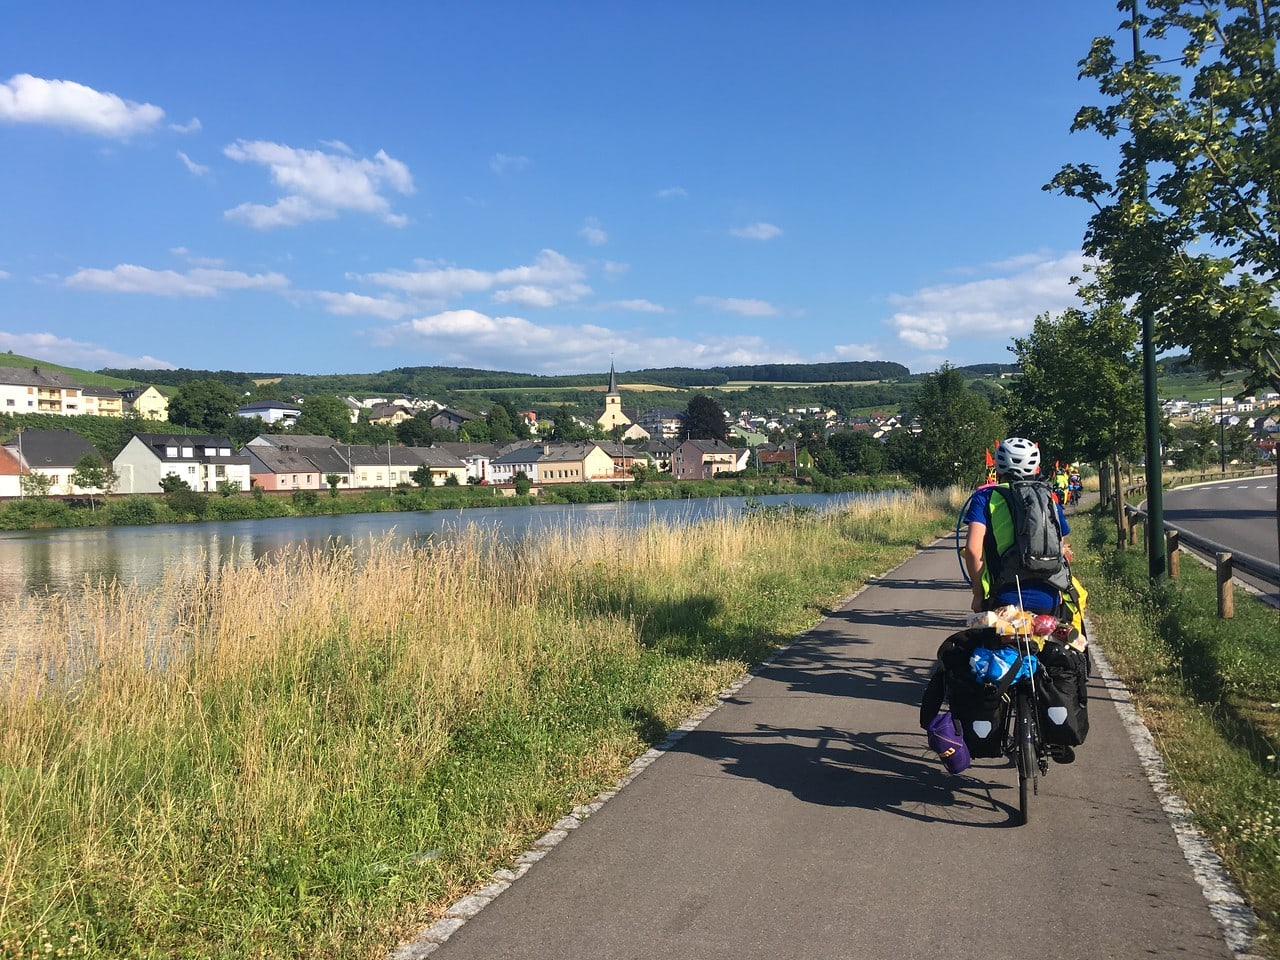 Teens heading into a quaint town on this summer biking trip through Europe